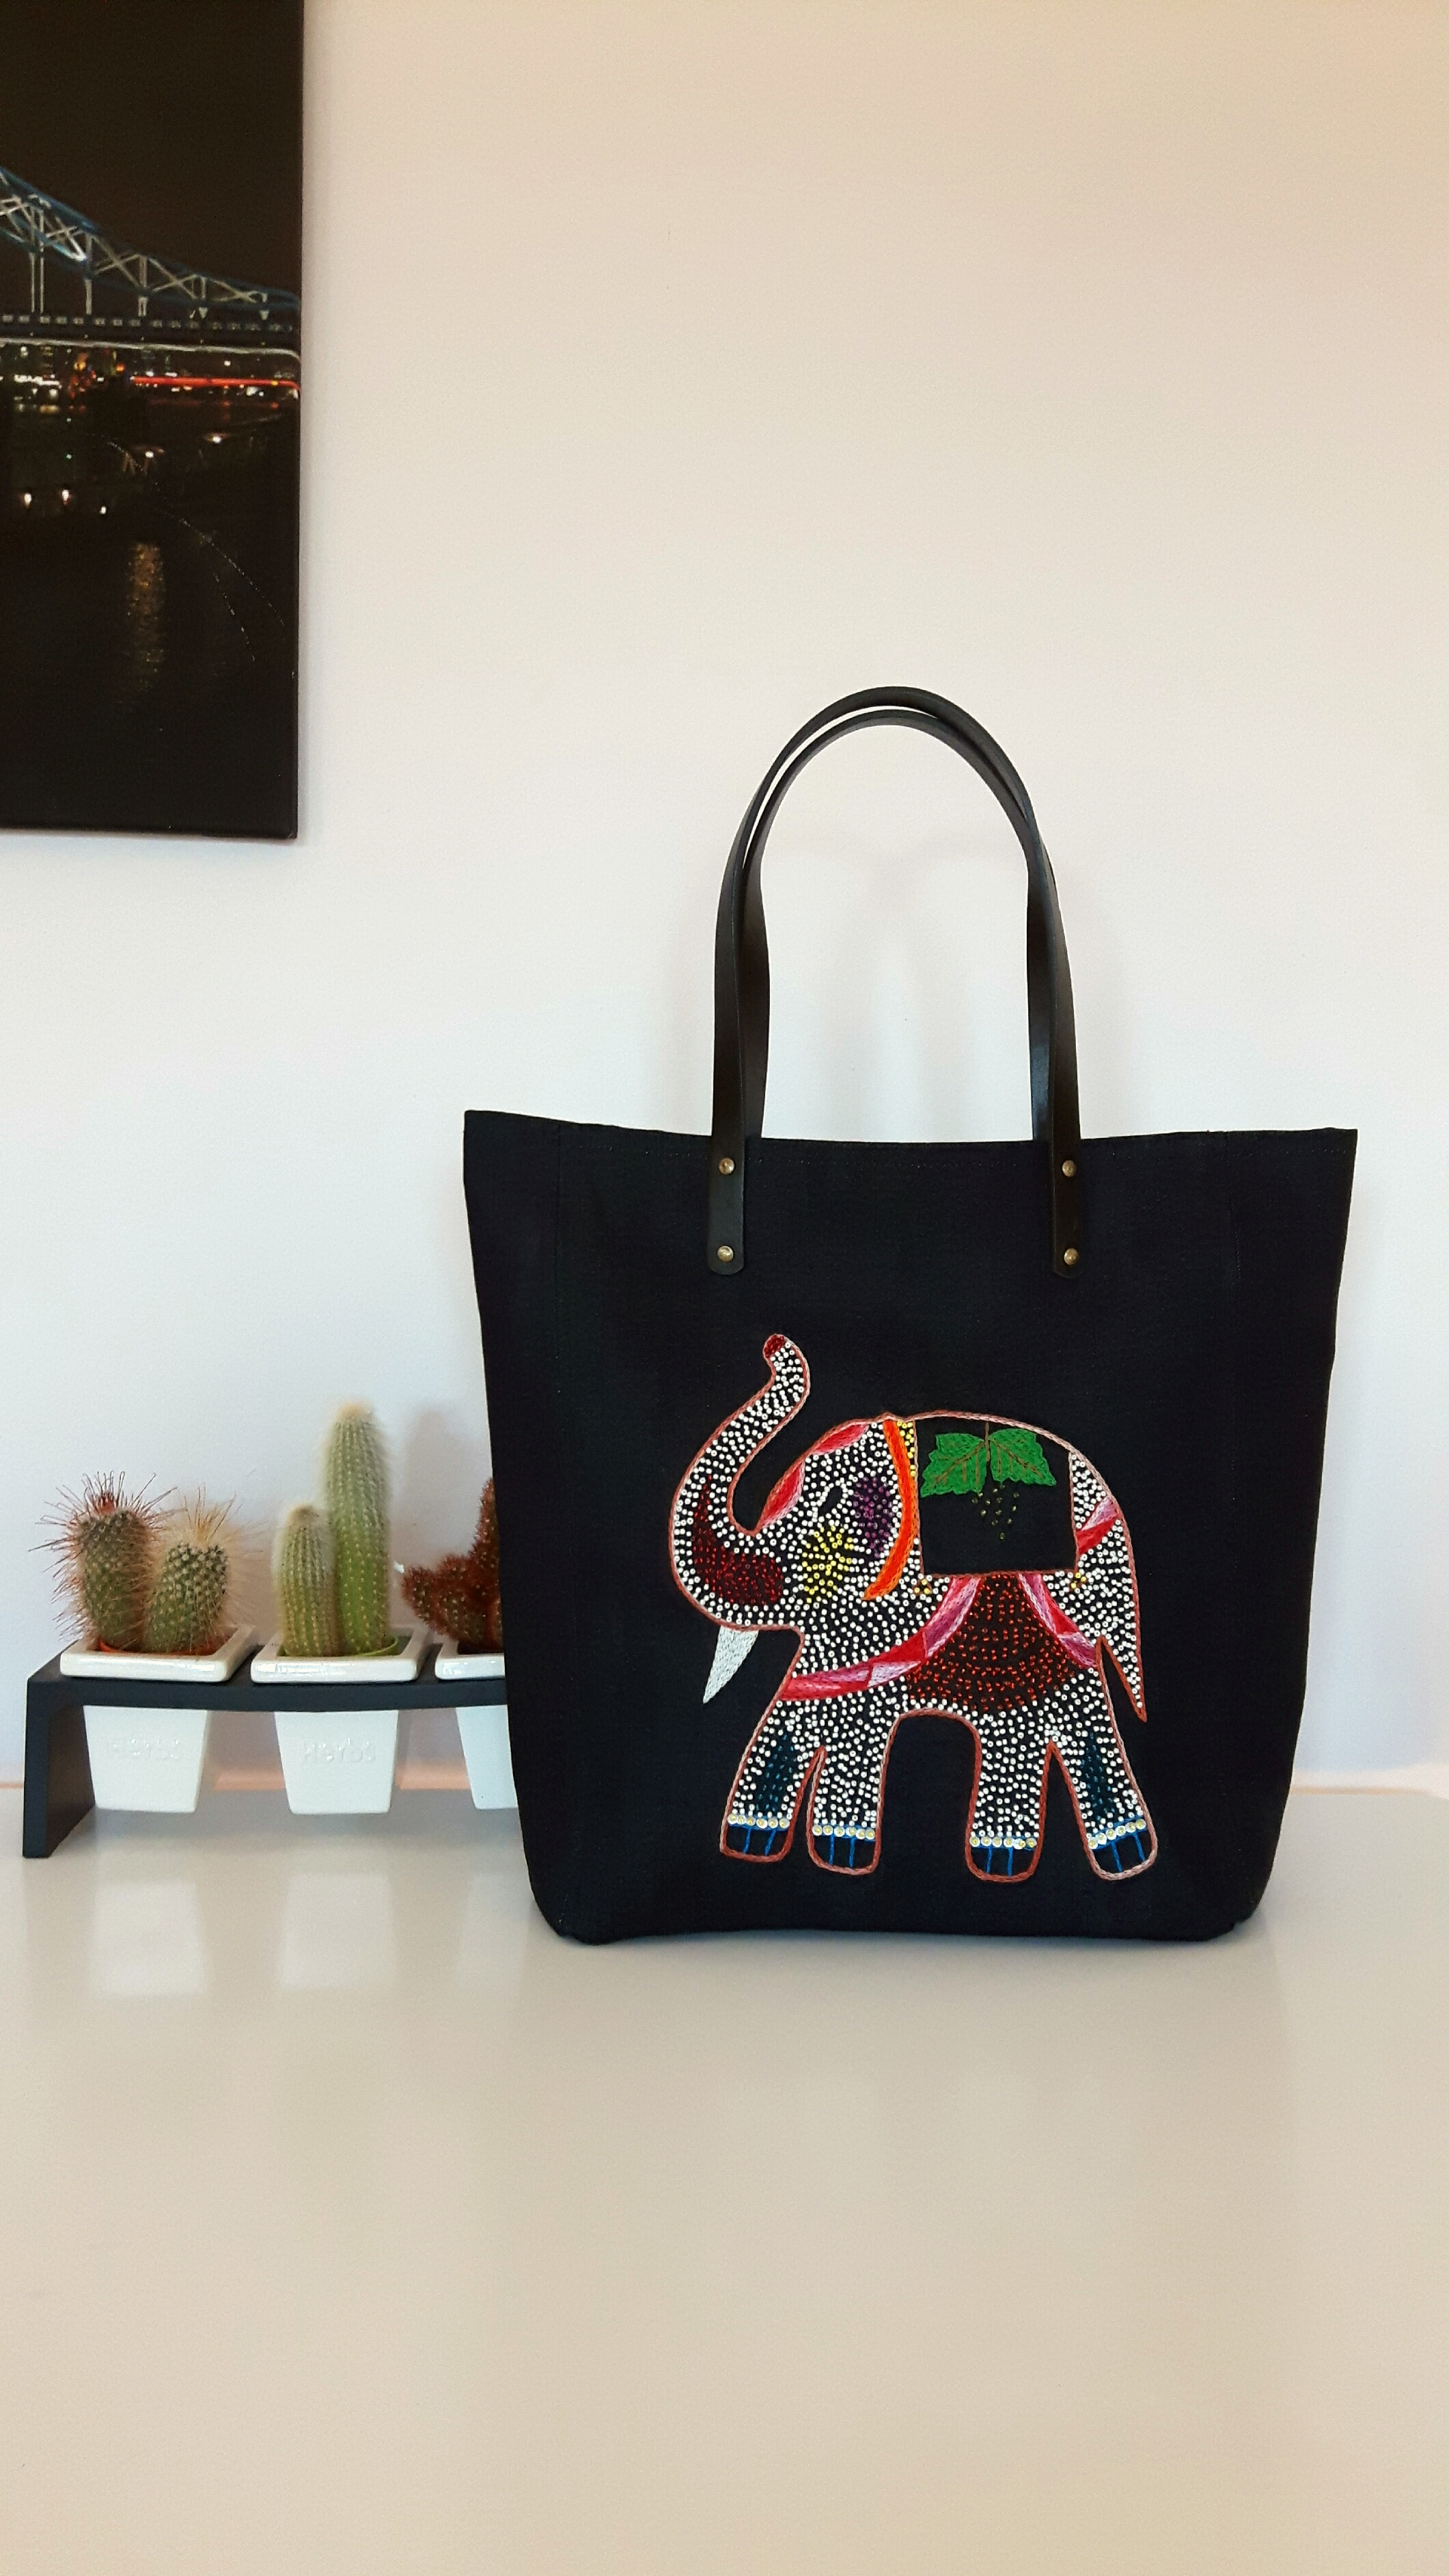 Fair trade hand embroidered elephant tote bag in sequins